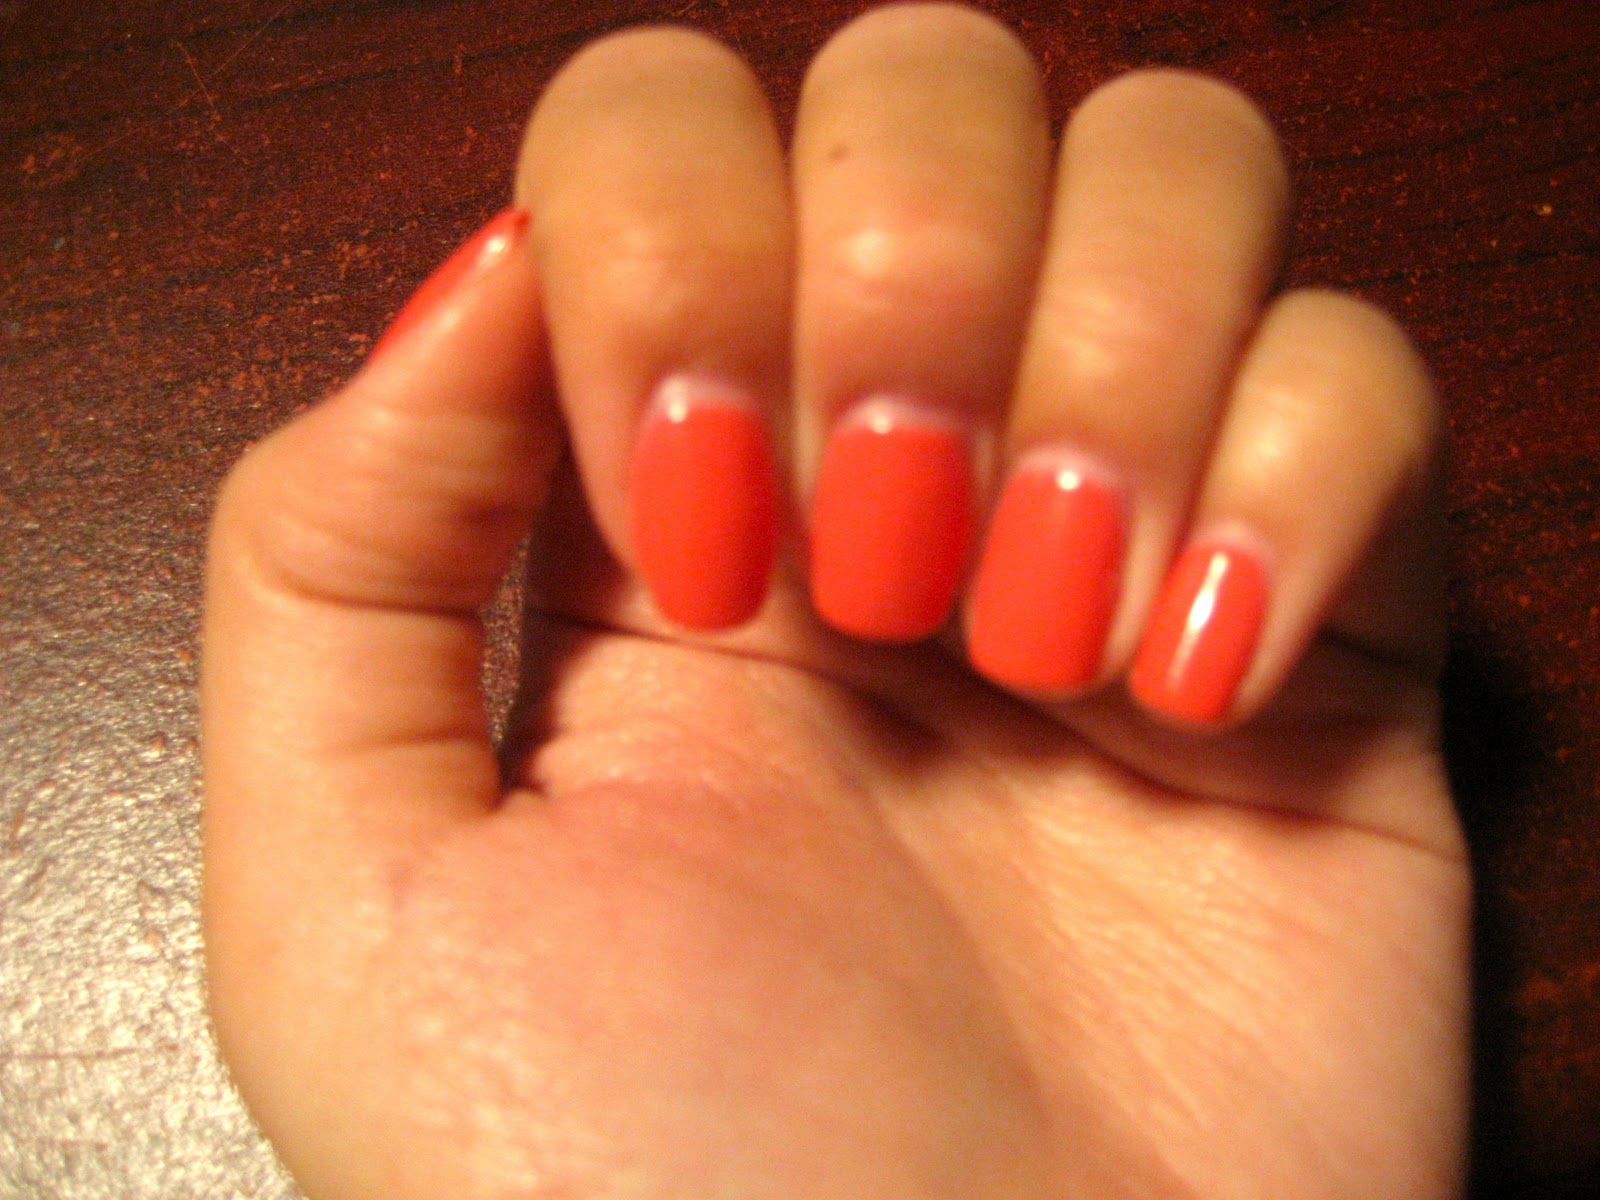 The odds are good...: review: shellac nails in tropix